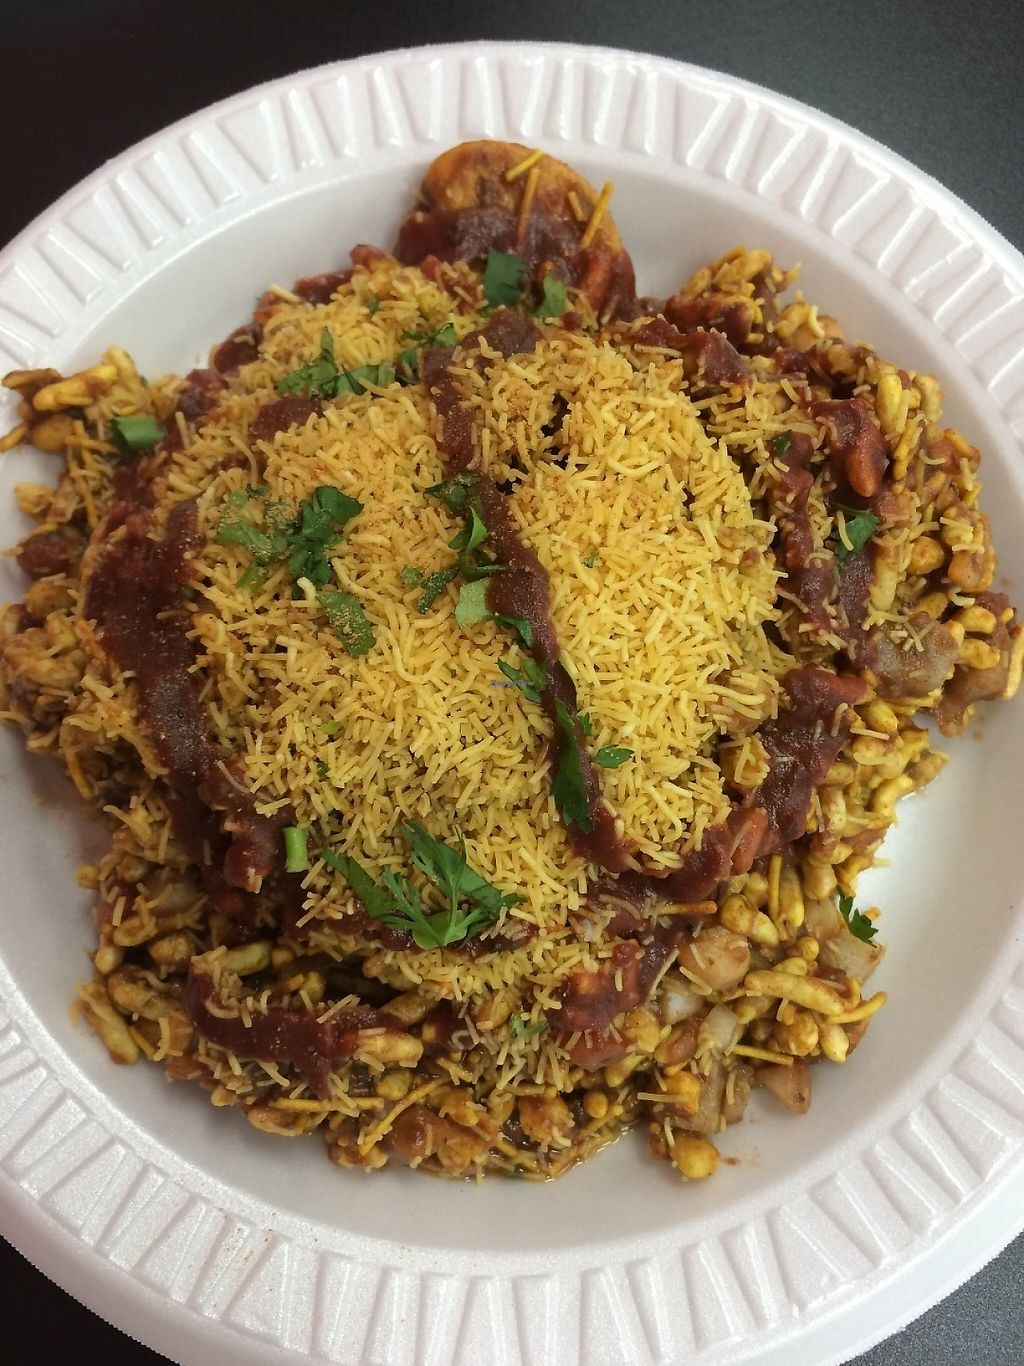 """Photo of Desi Street Food  by <a href=""""/members/profile/MyGreenTongue"""">MyGreenTongue</a> <br/>Bhel Puri <br/> May 24, 2017  - <a href='/contact/abuse/image/88226/262107'>Report</a>"""